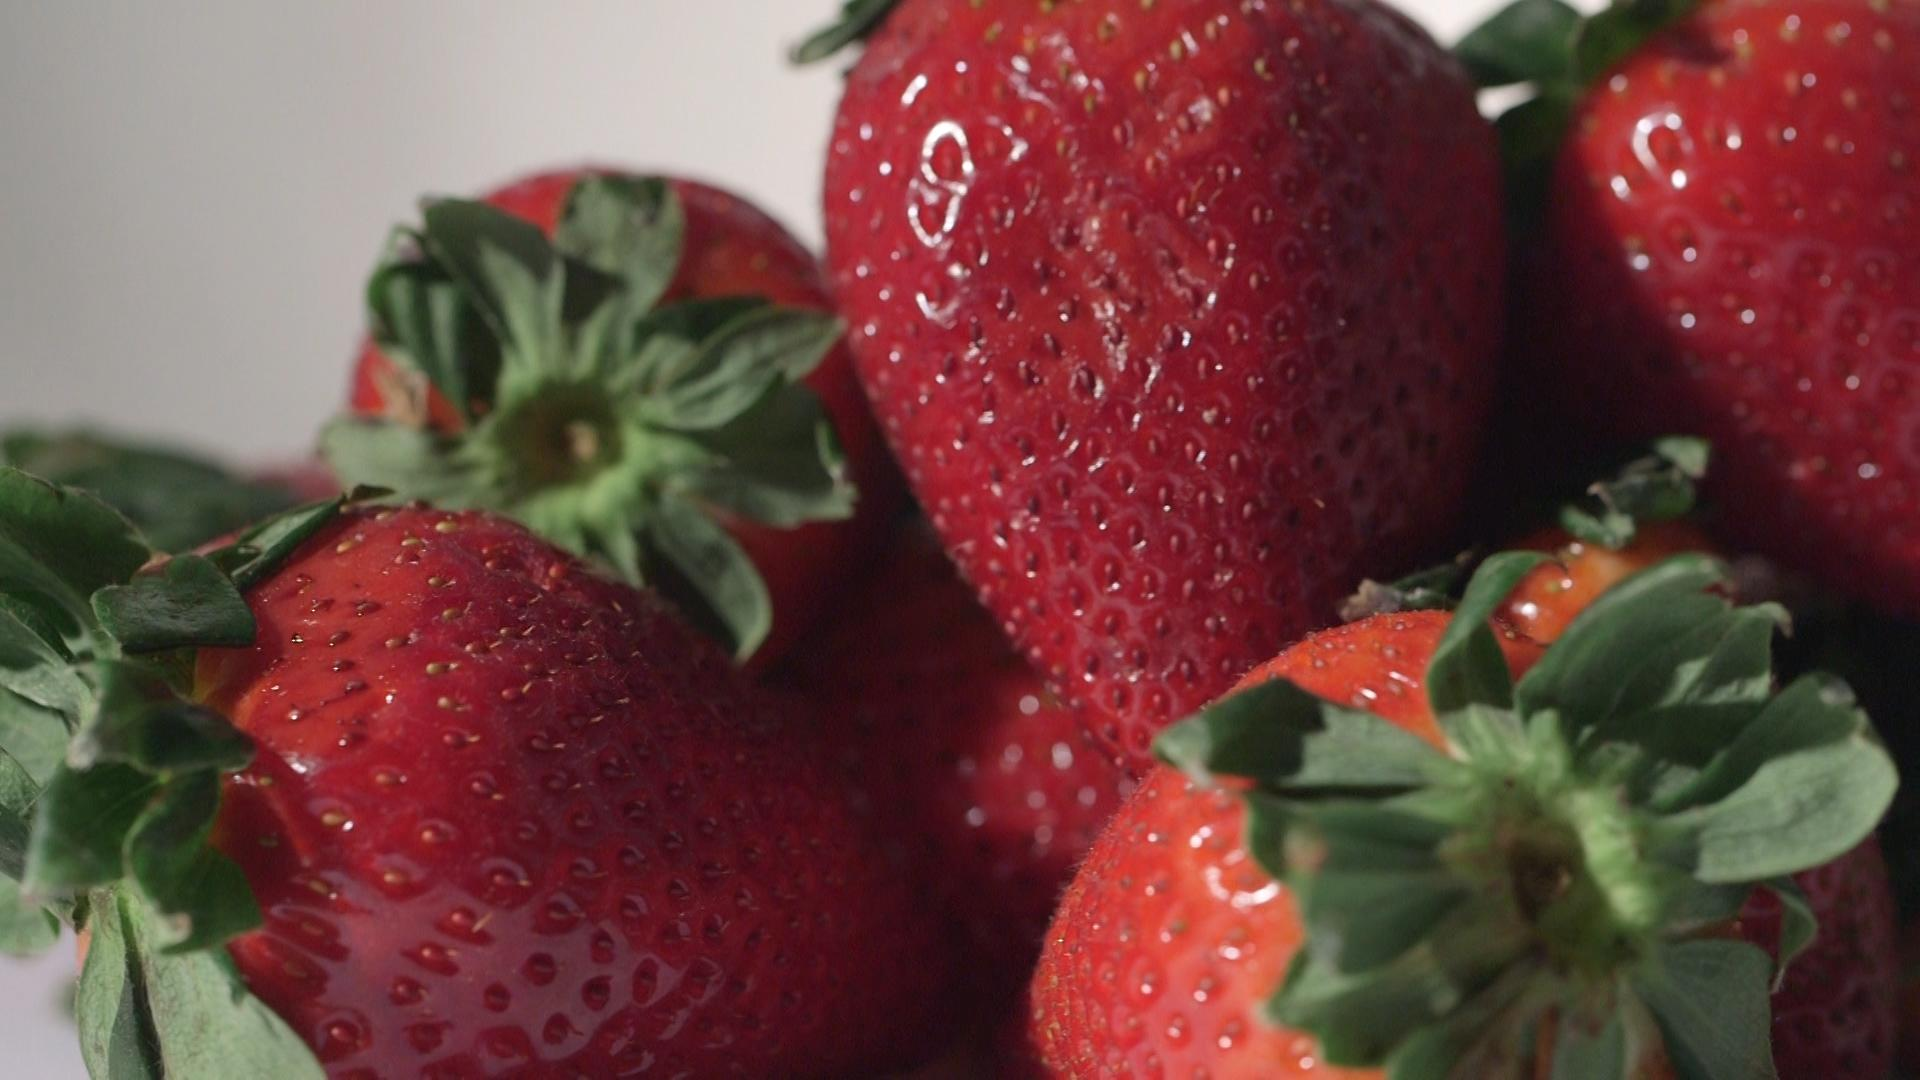 The Truth About the Sugar in Fruit